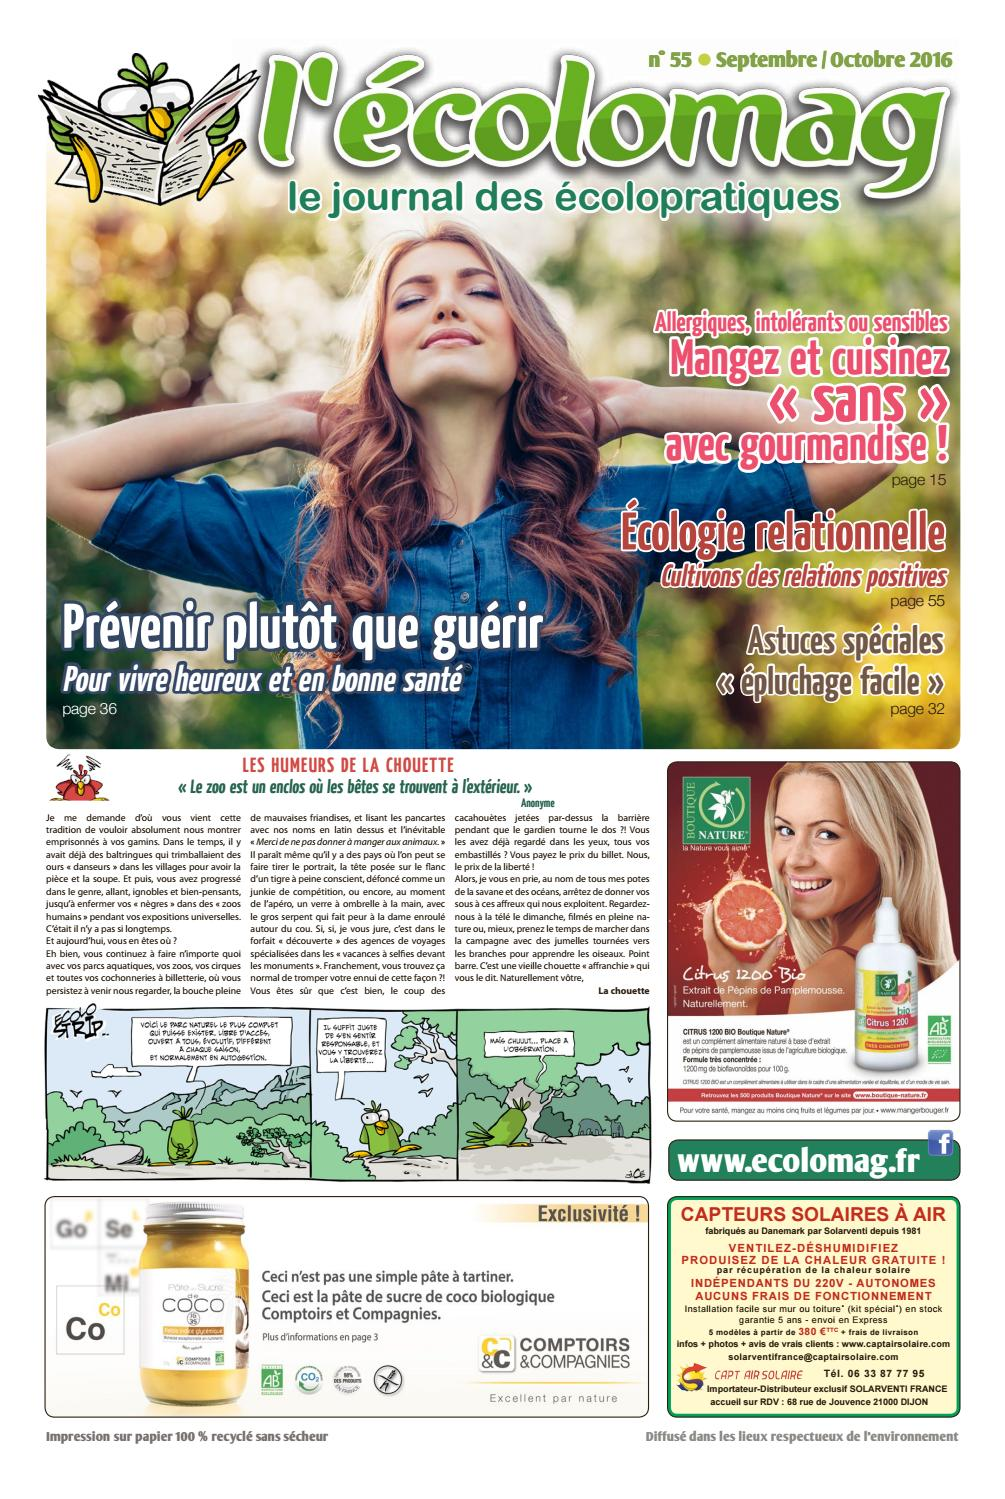 L Ecolomag n°55 by L Ecolomag - issuu 4e45f405956f